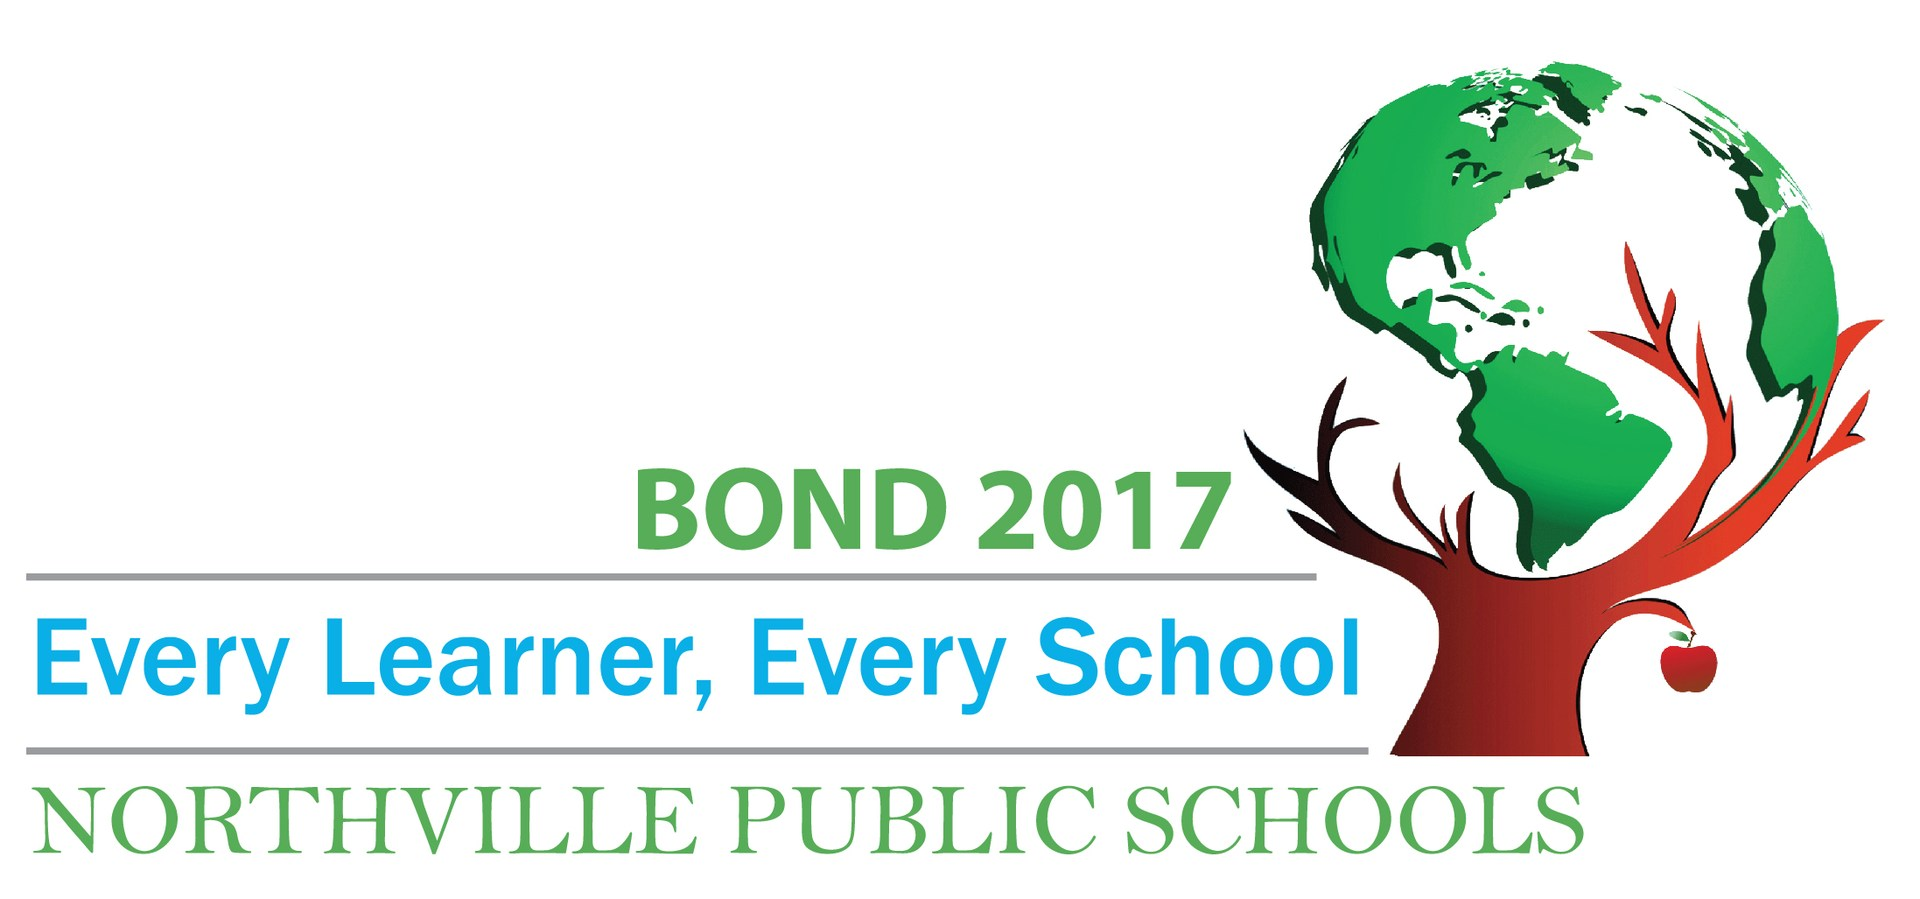 NPS Bond 2017 logo